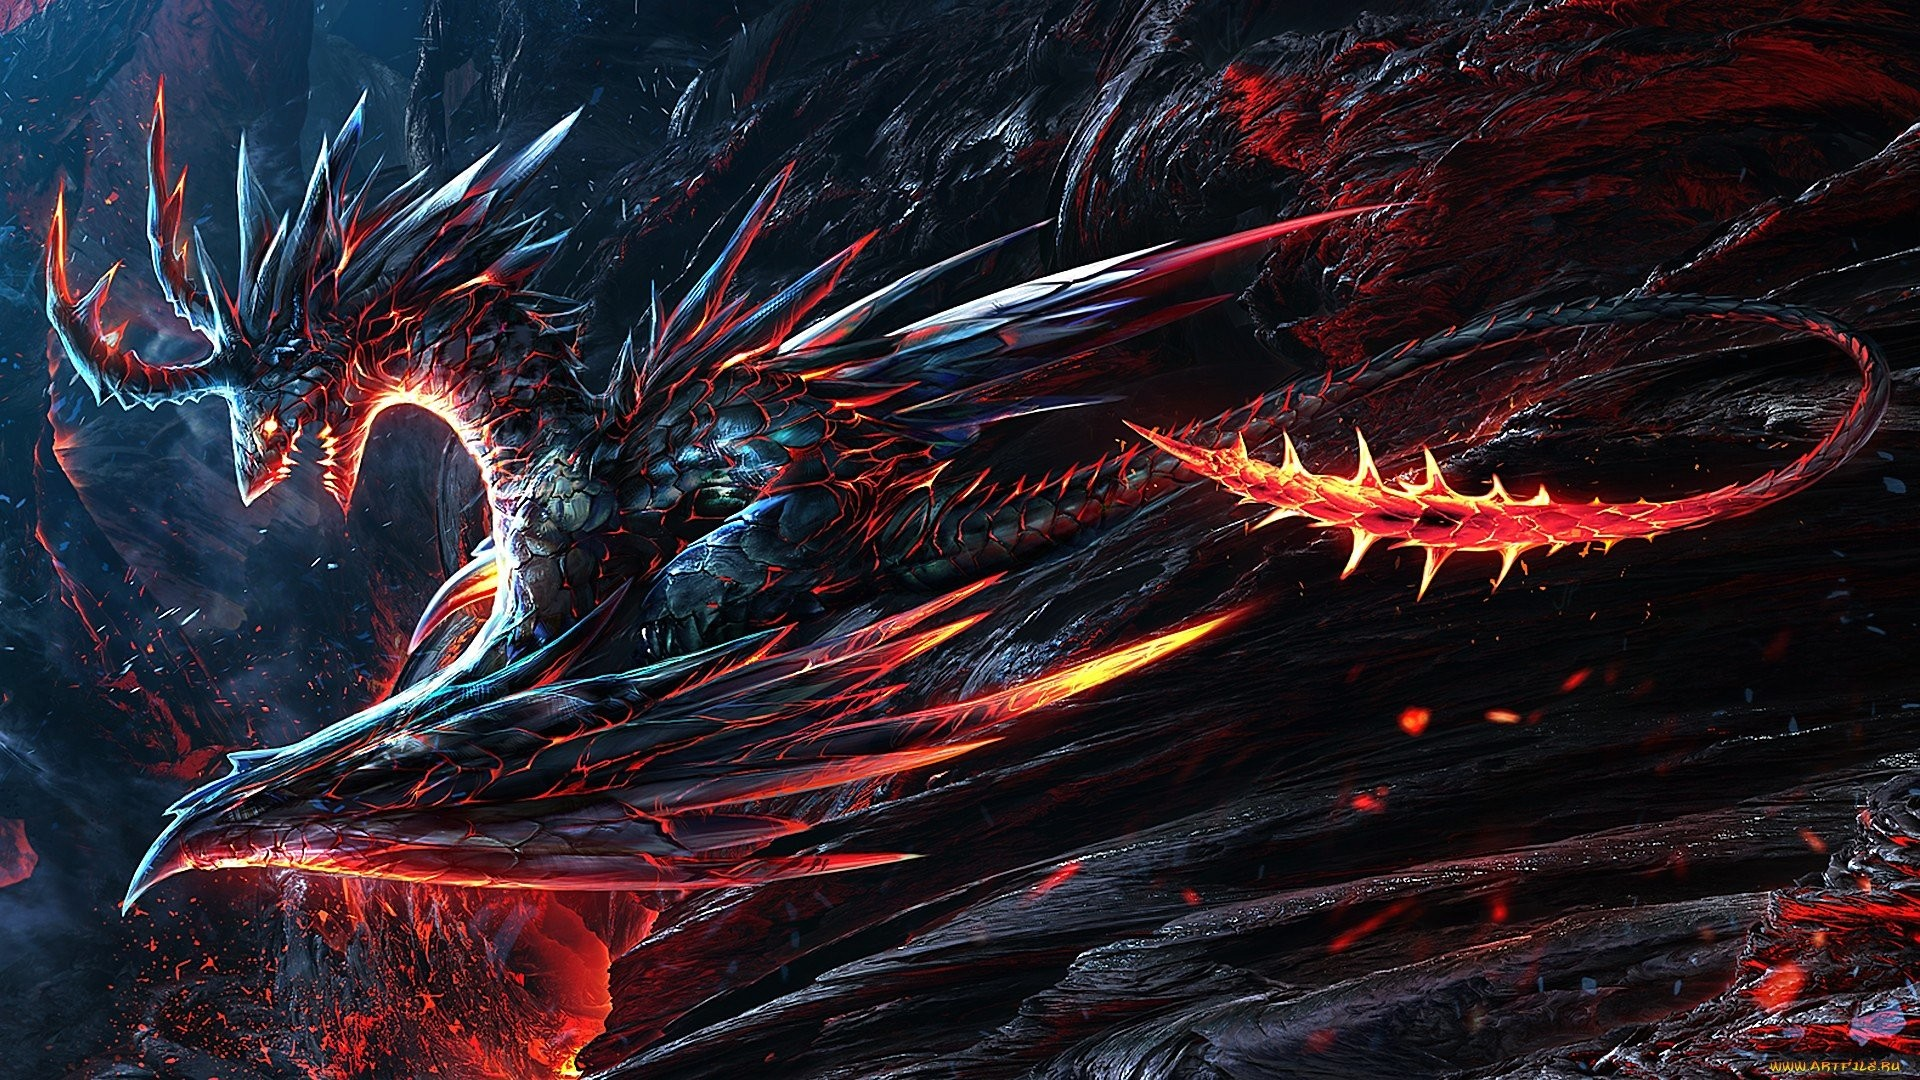 1920x1080 Lava Dragon Wallpapers | Lava Dragon Wallpapers | Pinterest | Lava and  Dragons